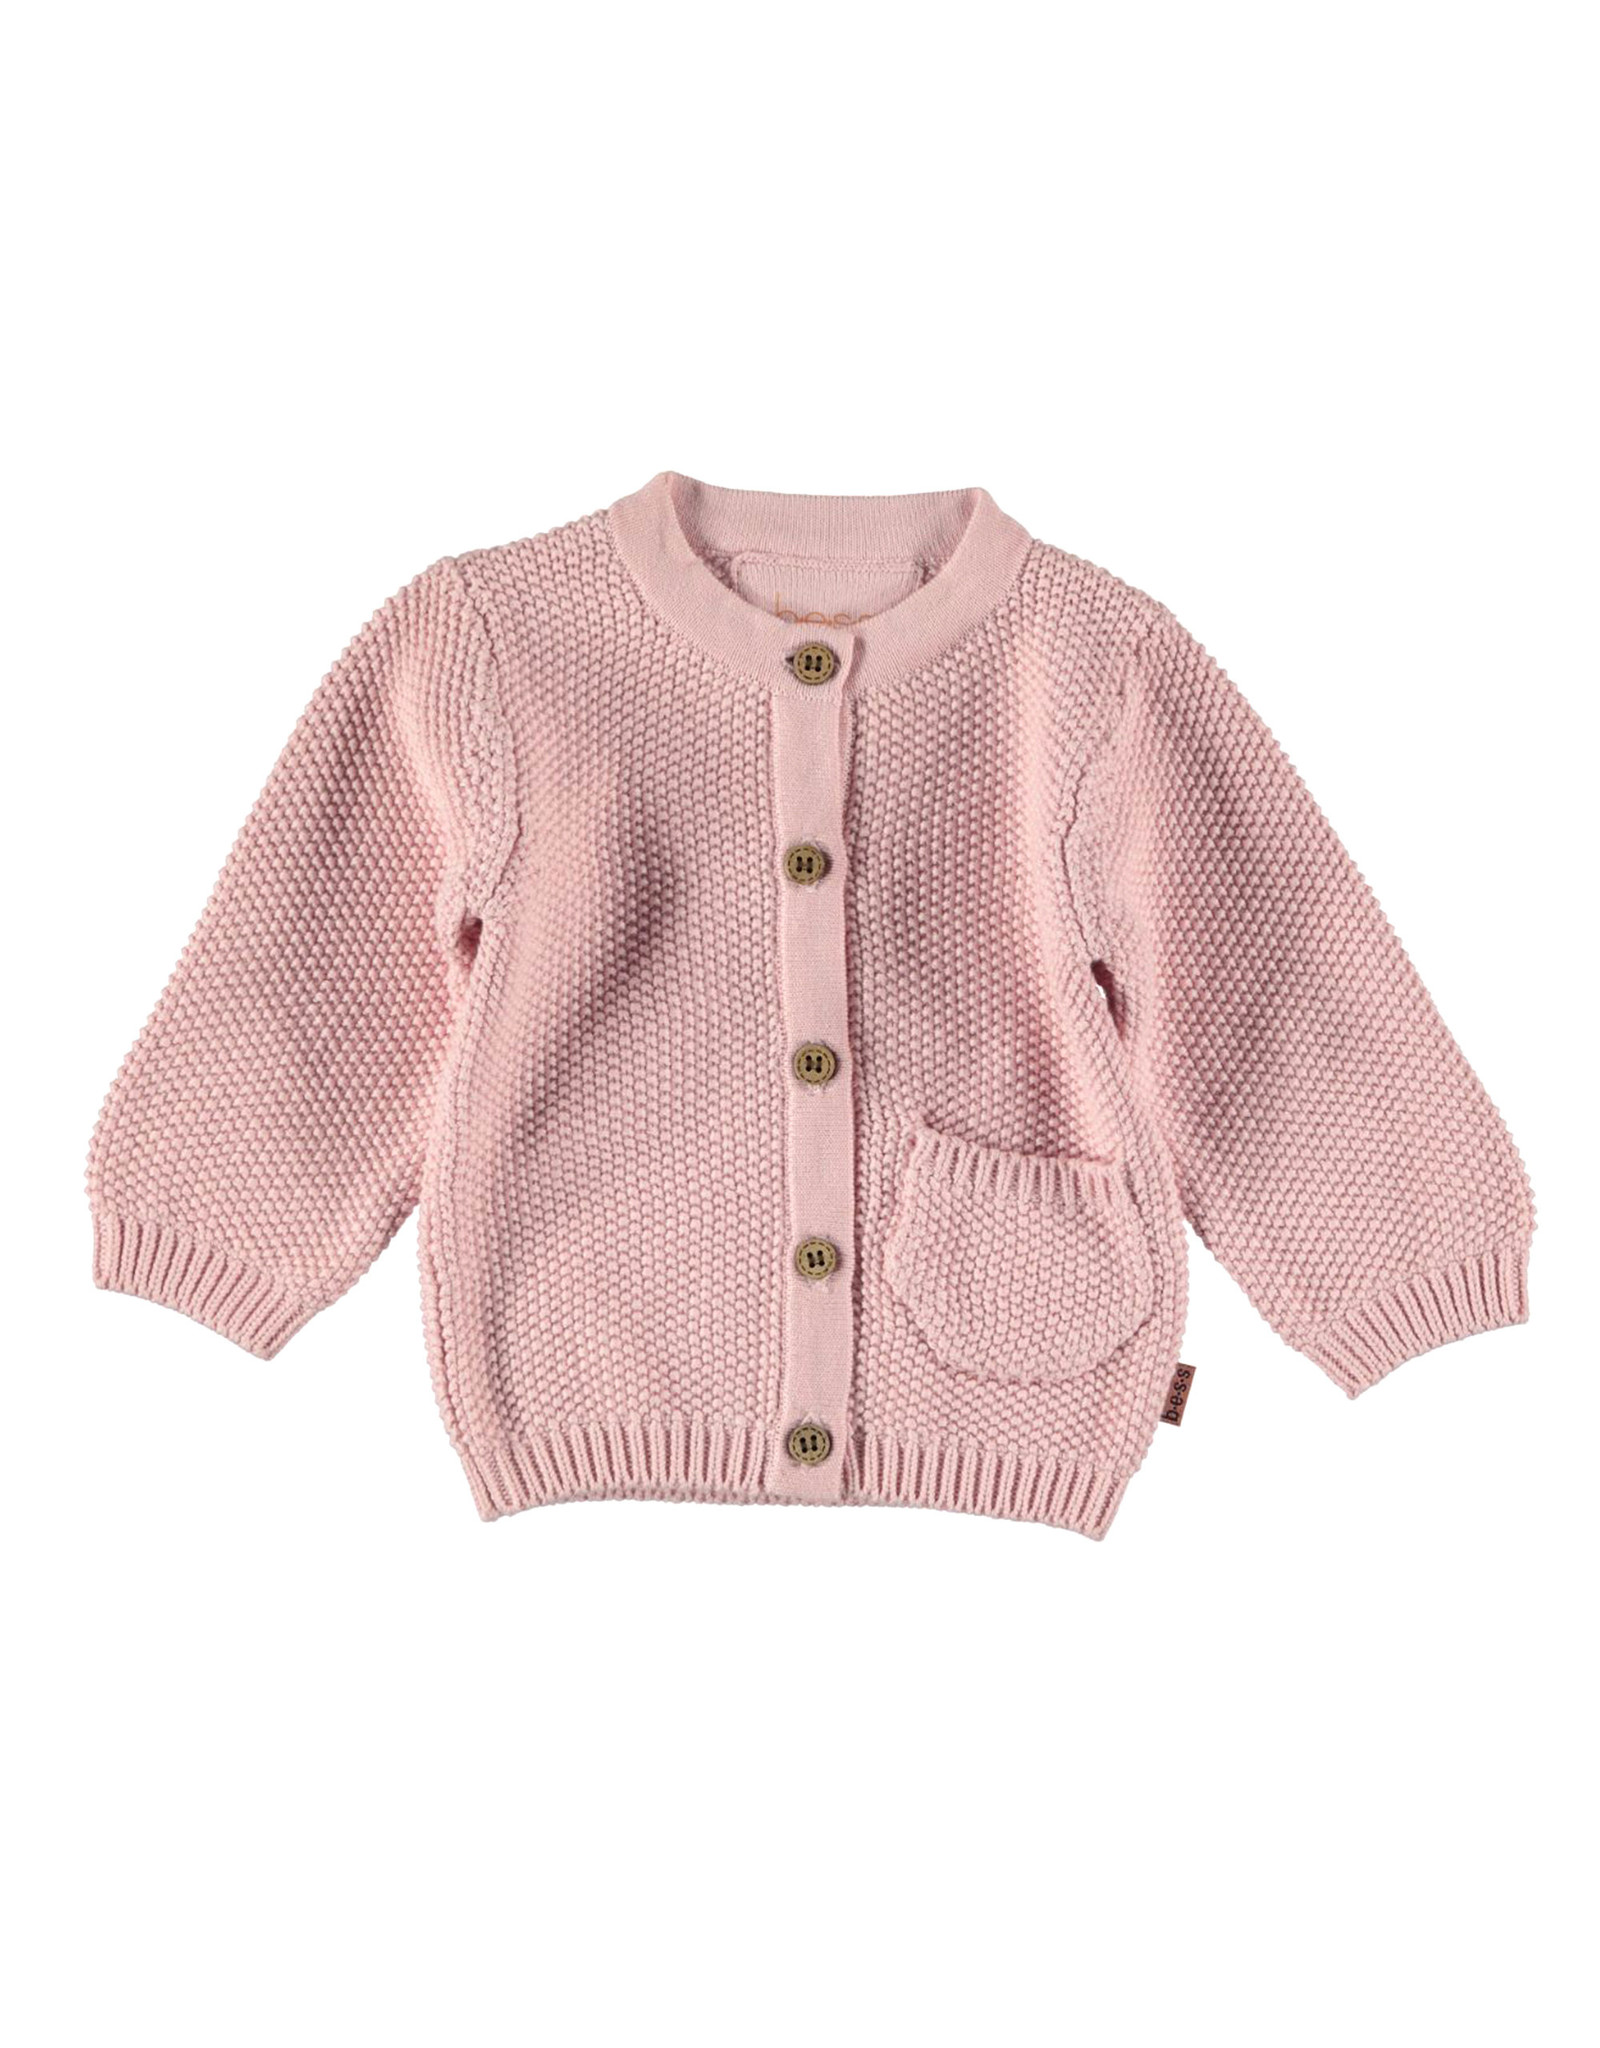 BESS Cardigan Knitted Pink